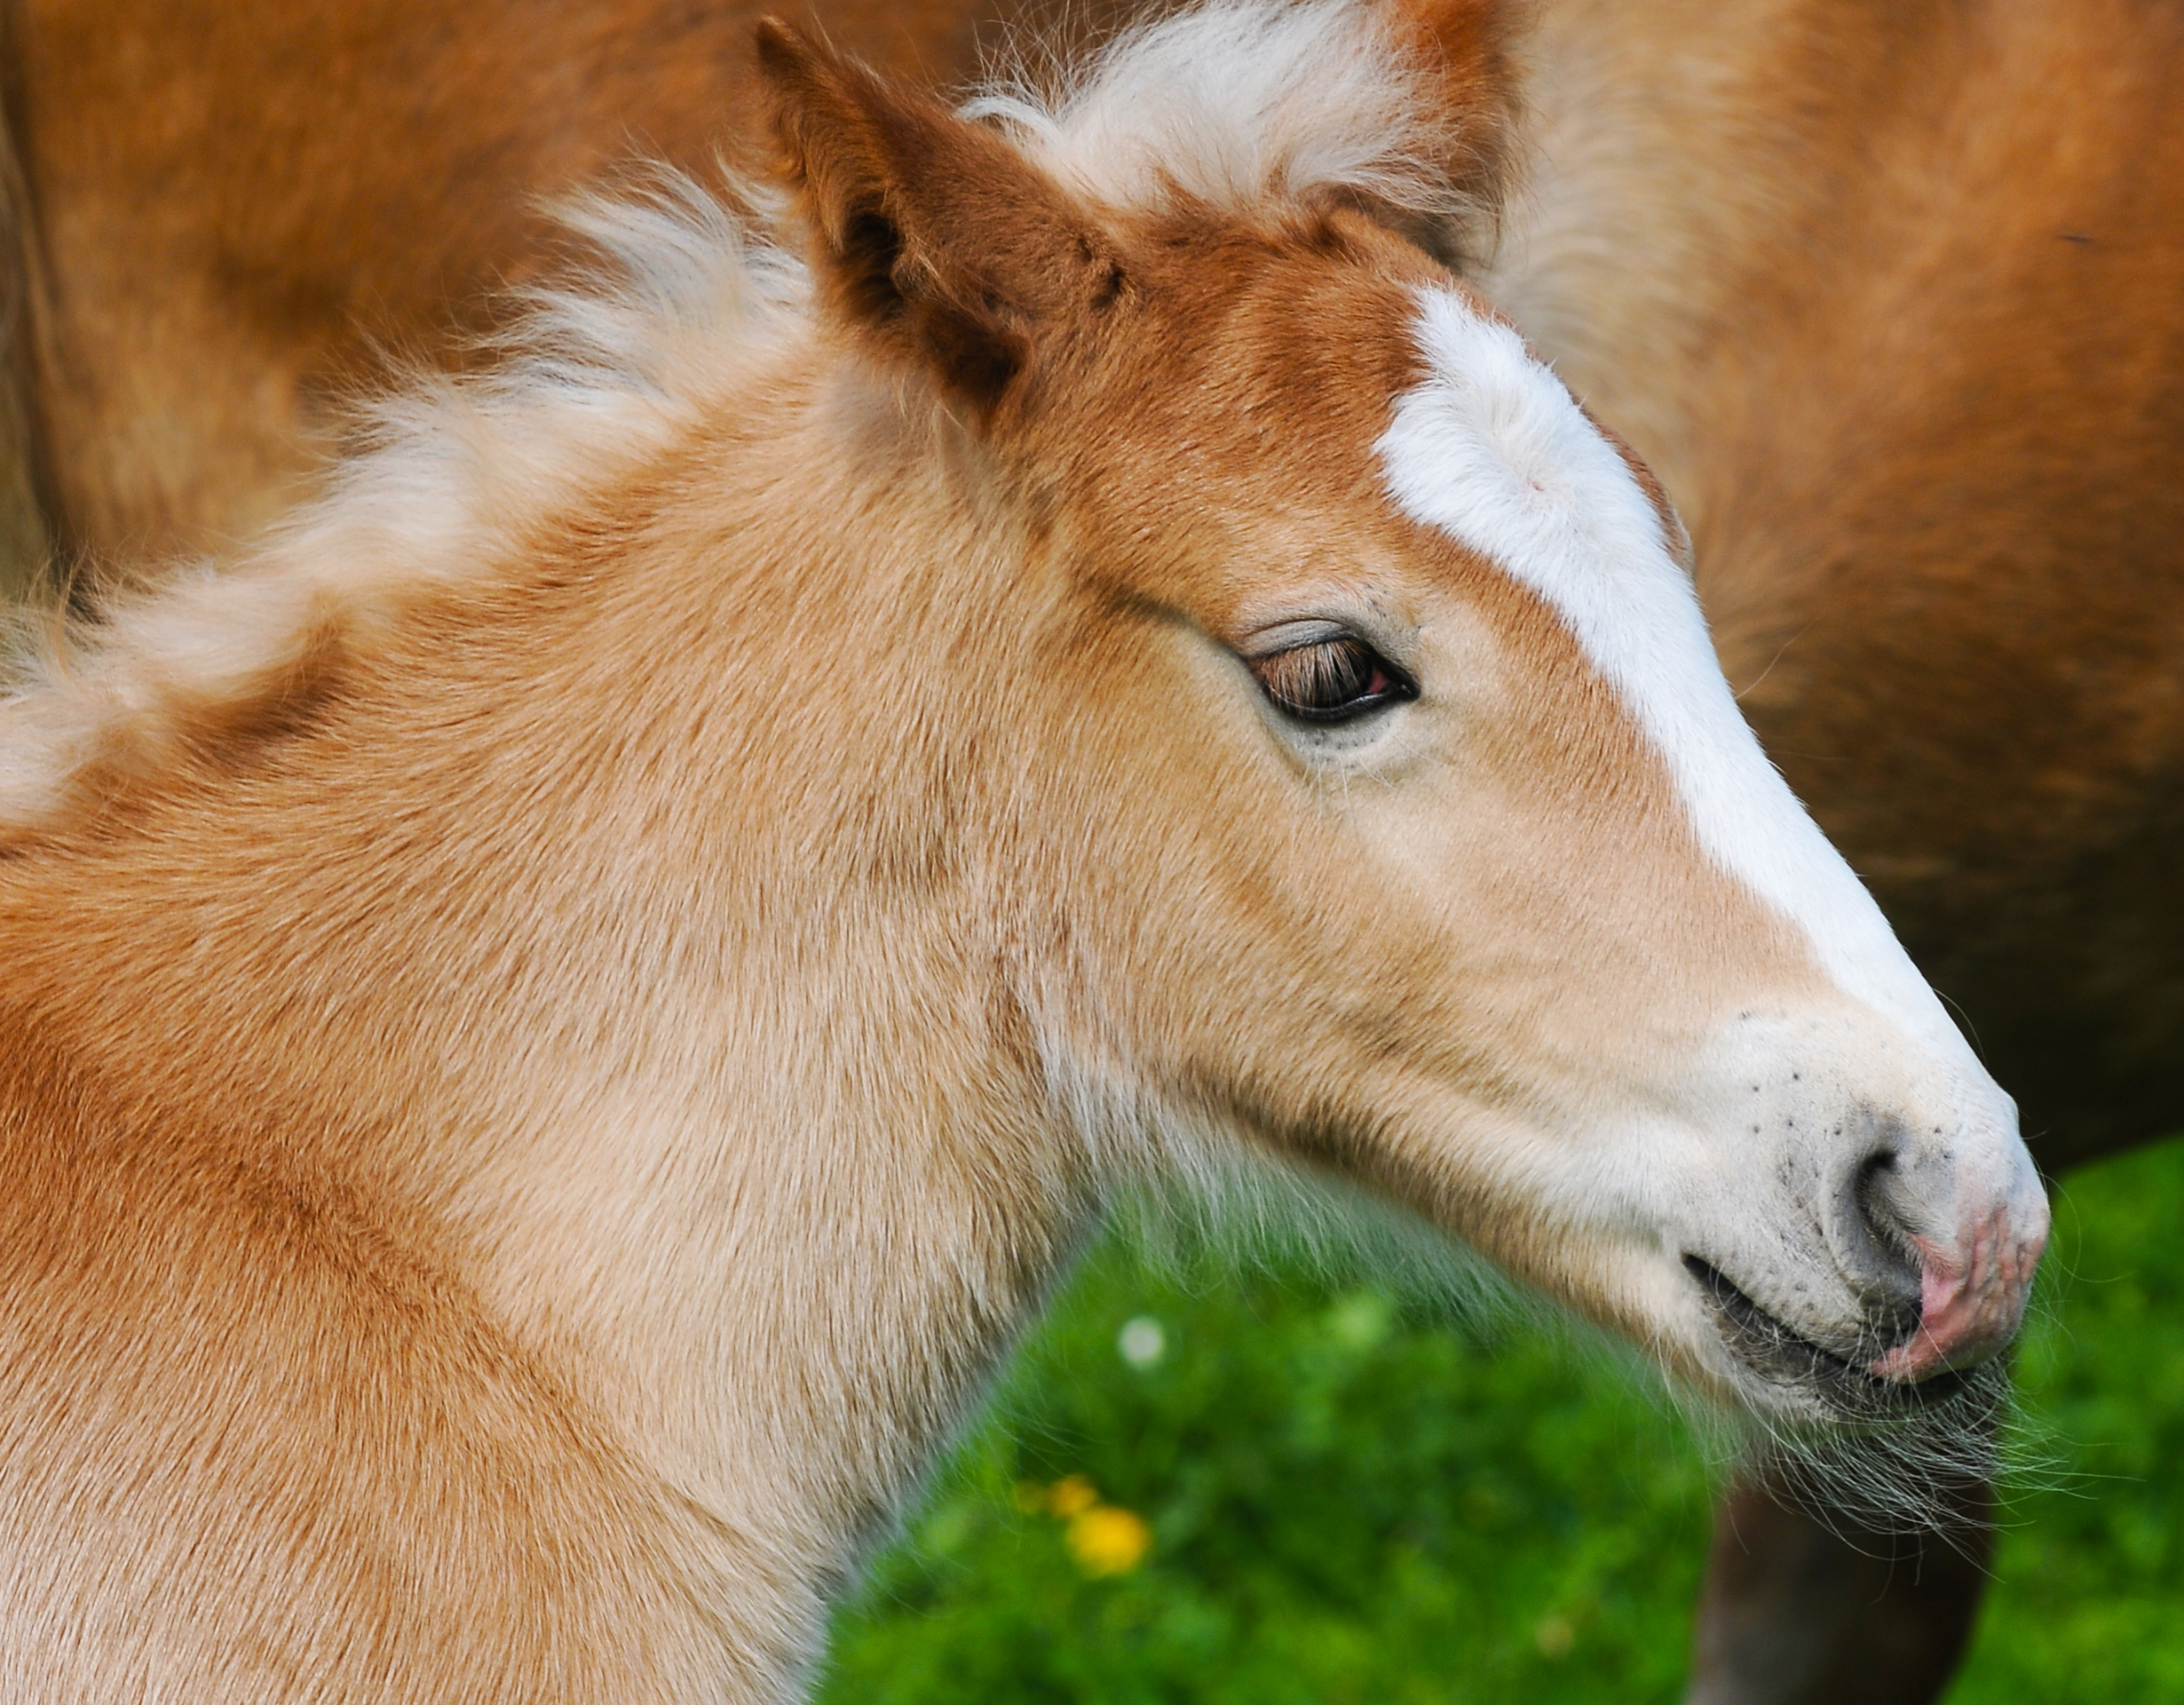 Prometea – The first ever cloned horse born in Cremona